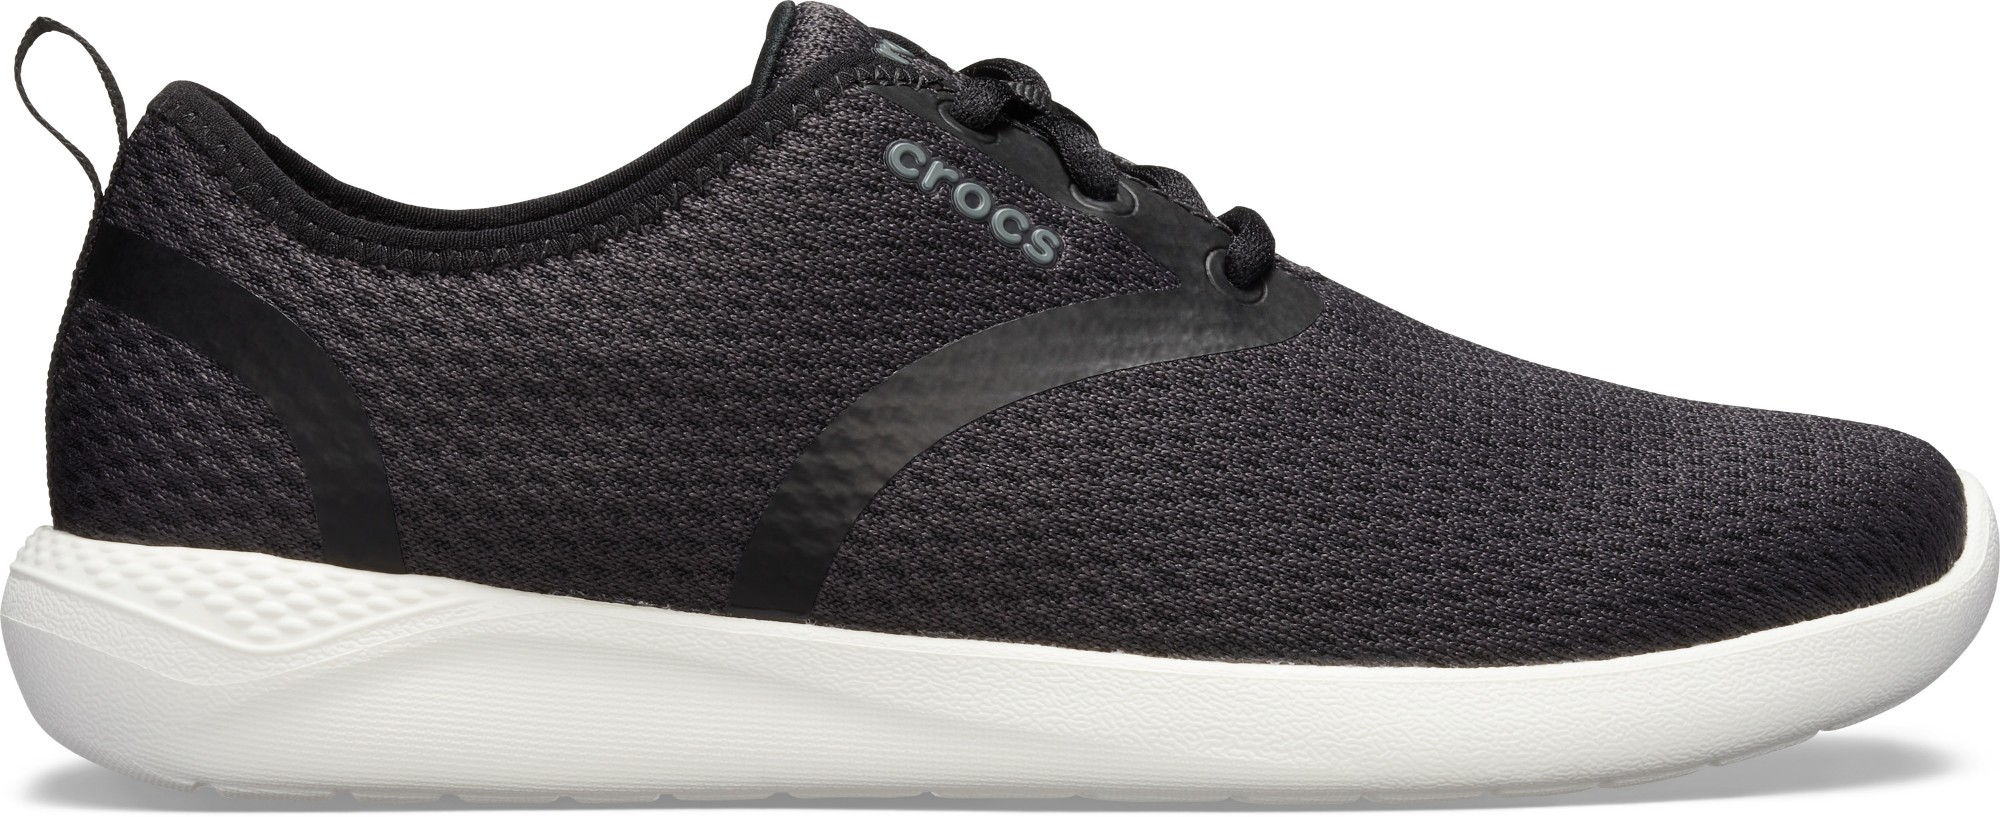 Crocs™ LiteRide Mesh Lace Women's Black/White 42,5